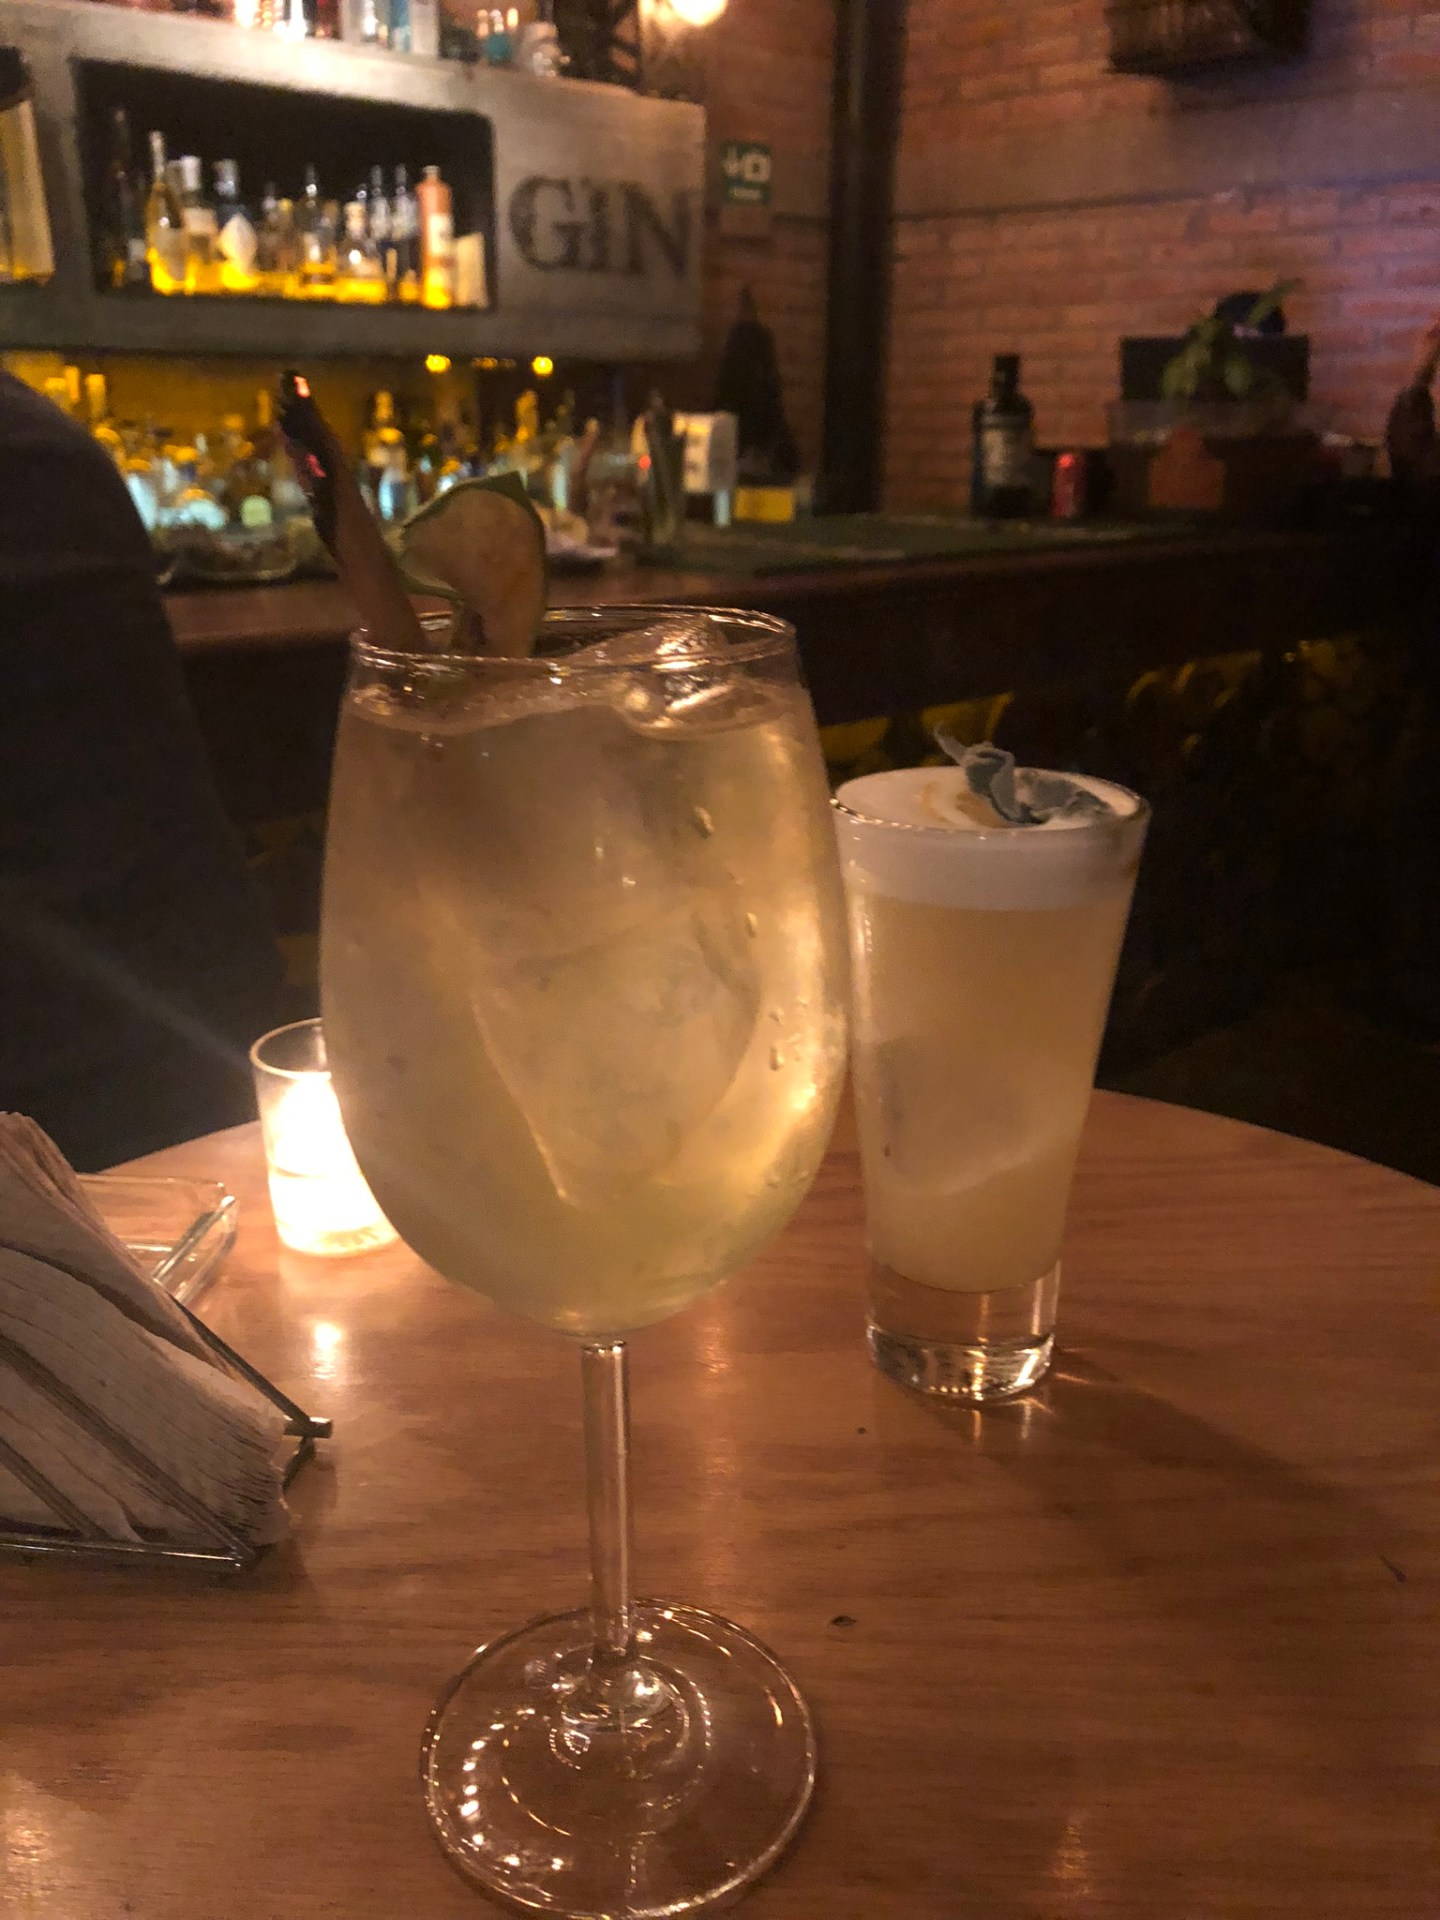 Gin cocktails at Gin Gin, Roma, Mexico City